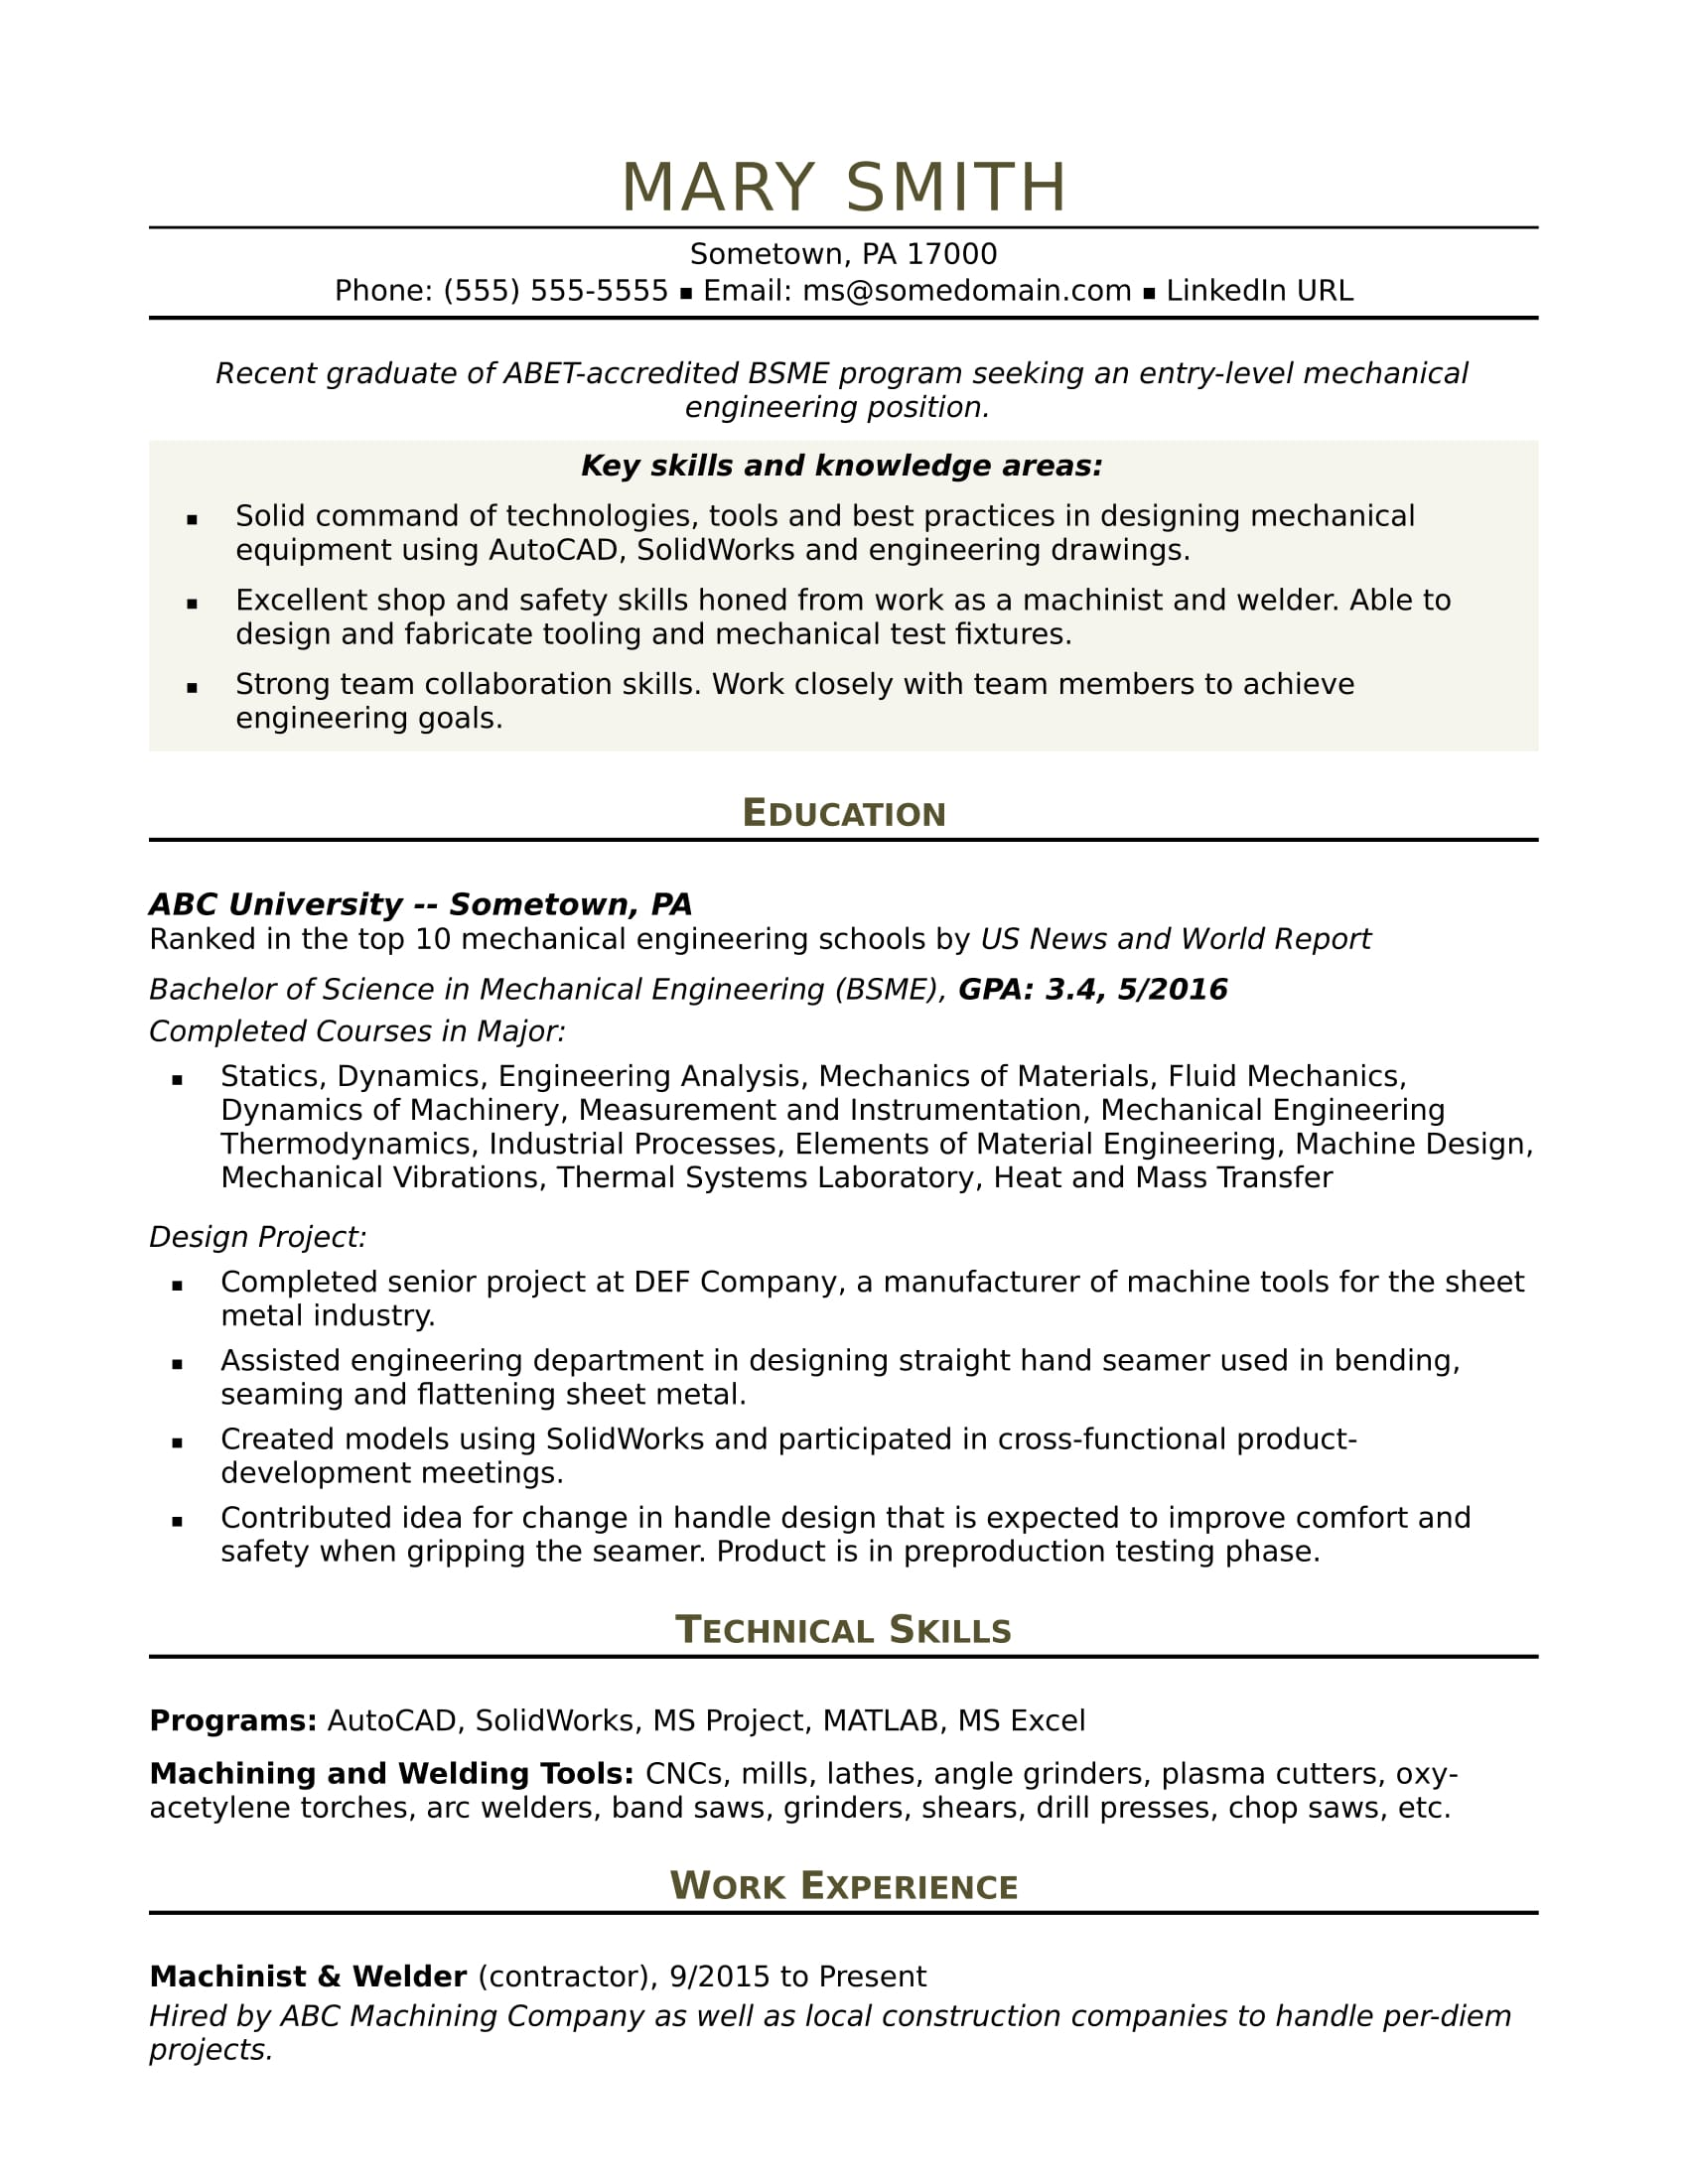 Sample resume for an entry level mechanical engineer monster entry level mechanical engineer resume template yelopaper Images